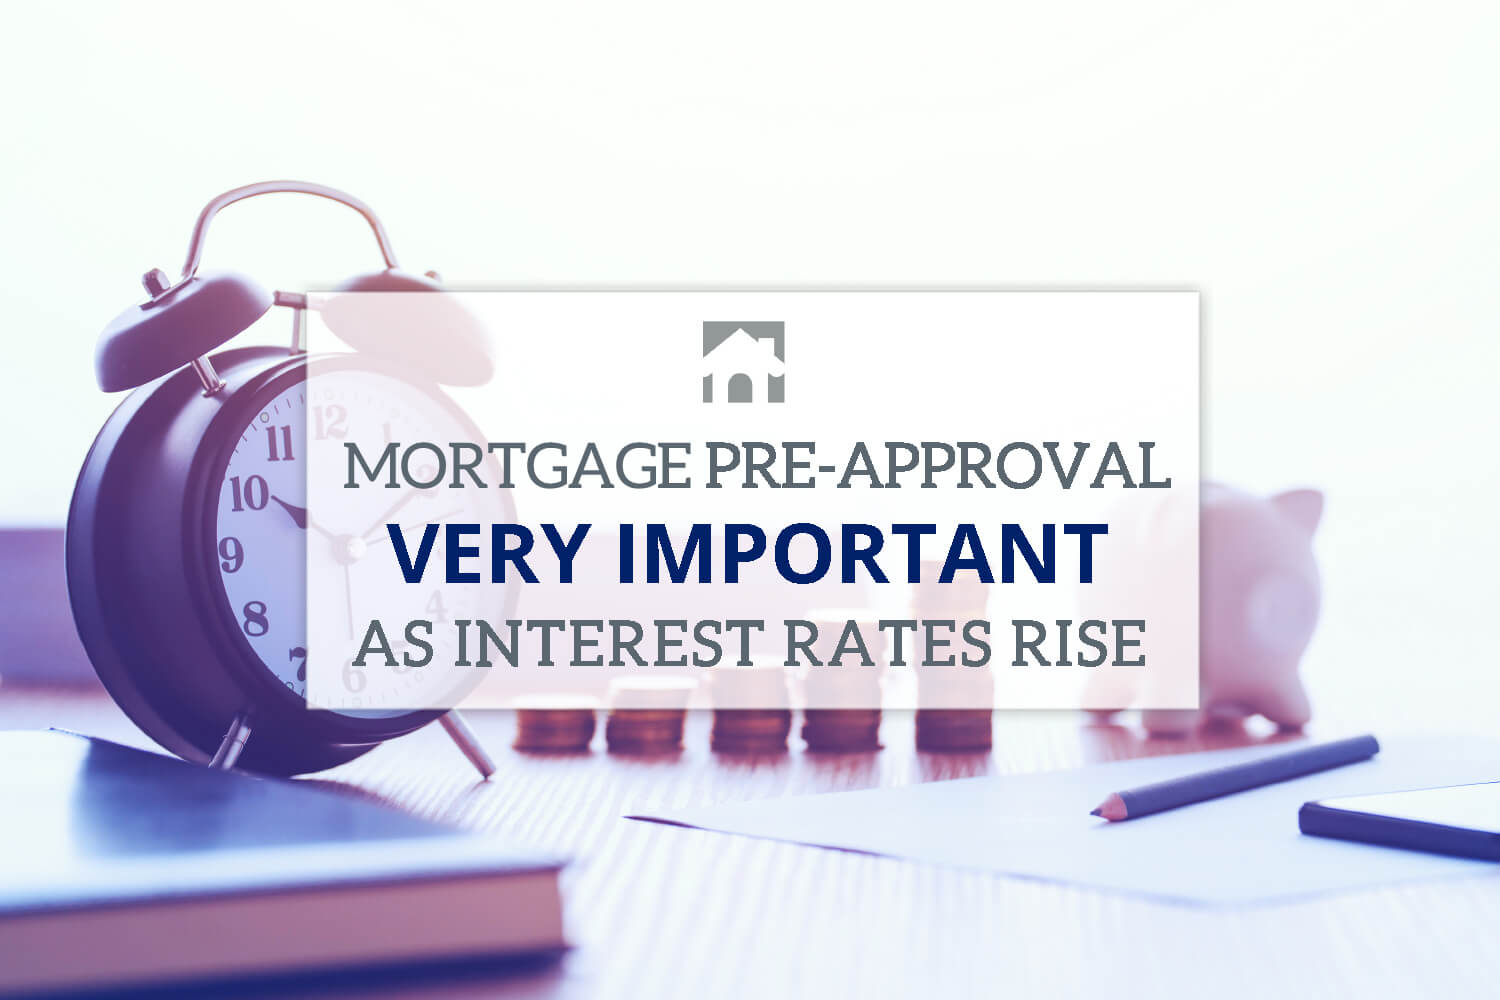 Mortgage Pre-Approval Very Important as Interest Rates Rise text overlay with clock on a desktop